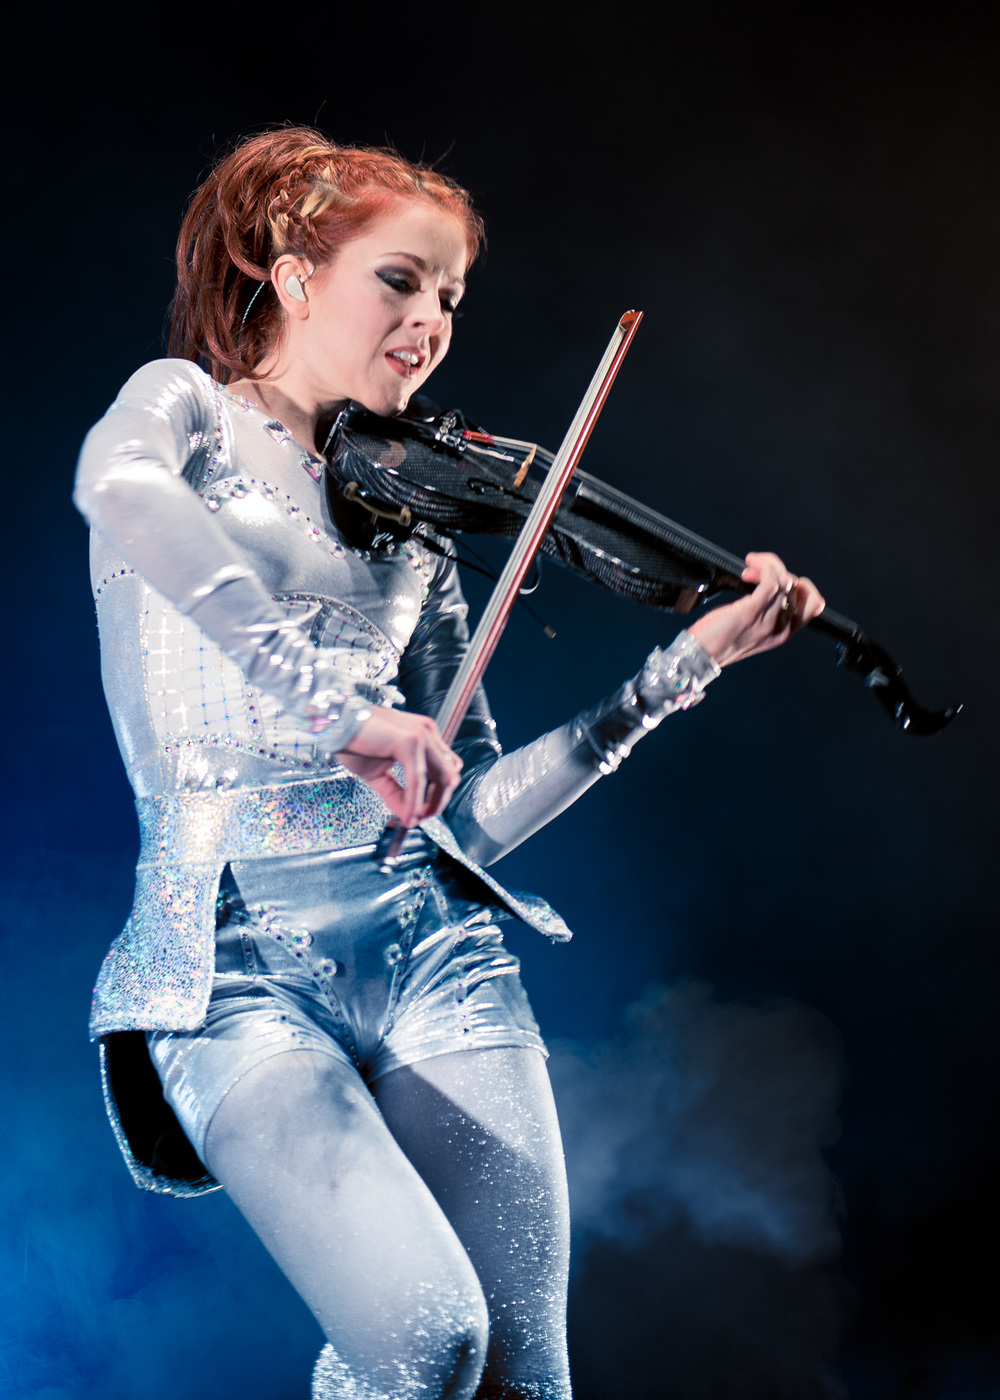 Nguyen_Timothy_Lindsey_Stirling_SpokaneWA-3.jpg